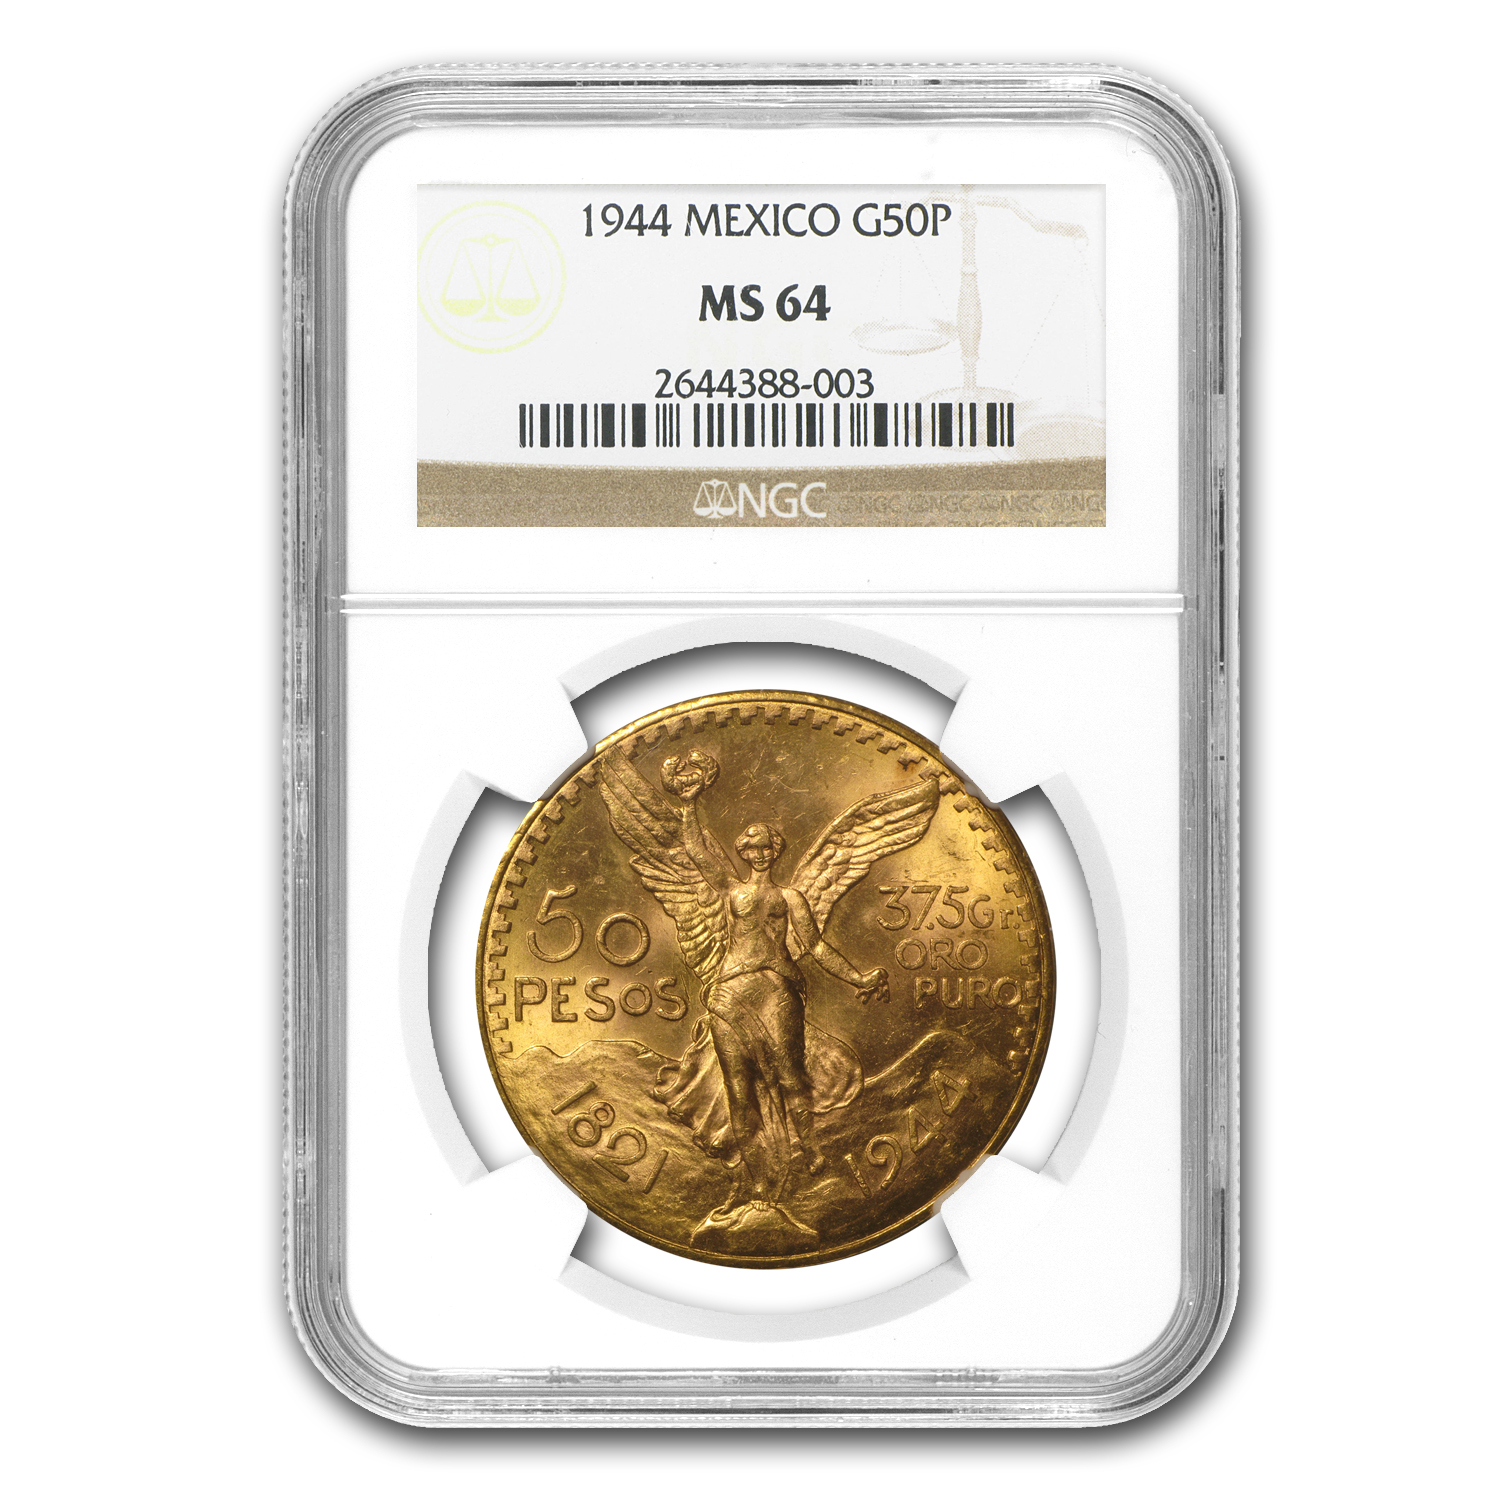 1944 Mexico Gold 50 Pesos MS-64 NGC